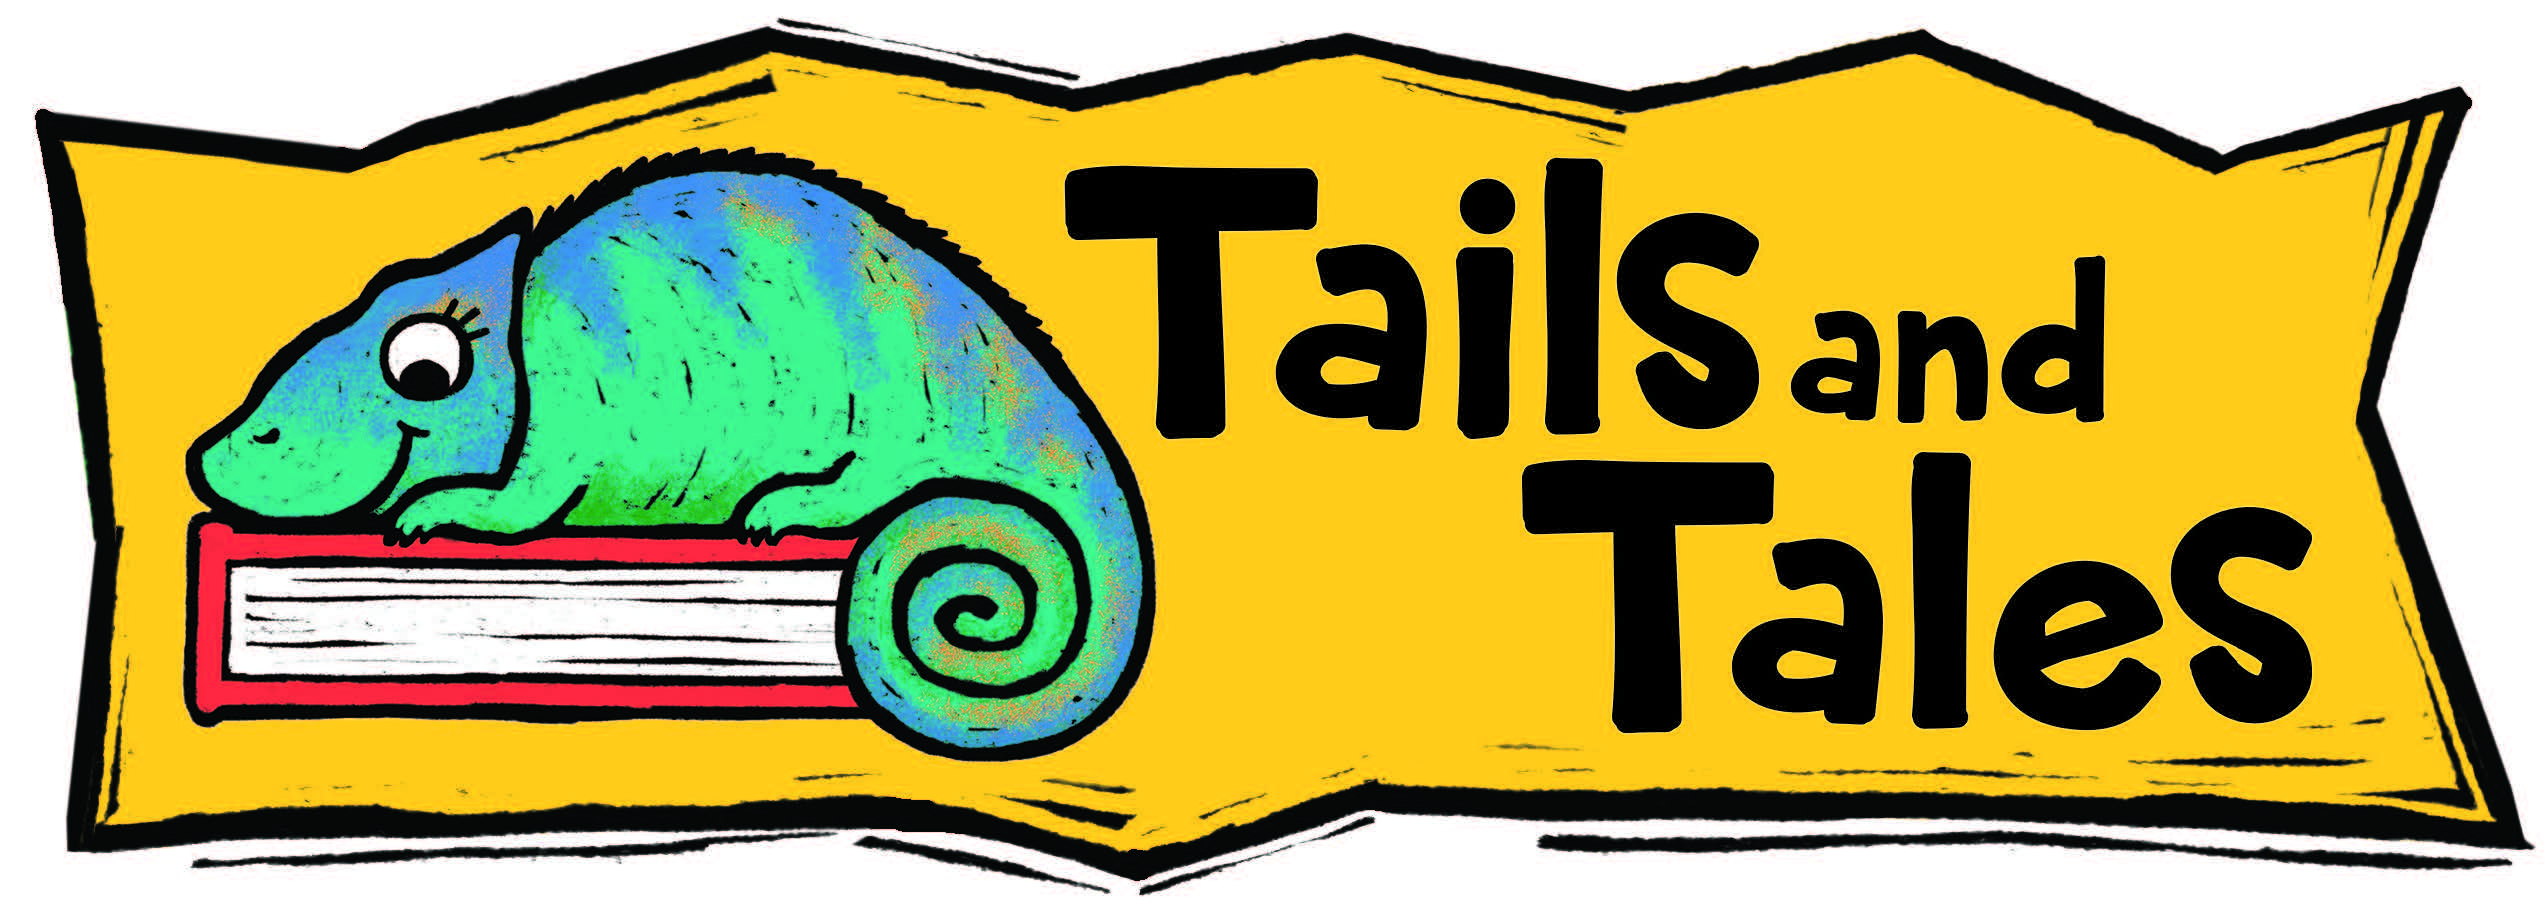 2021 Summer Library Program Tails and Tales banner image of green and blue iguana resting on a red book